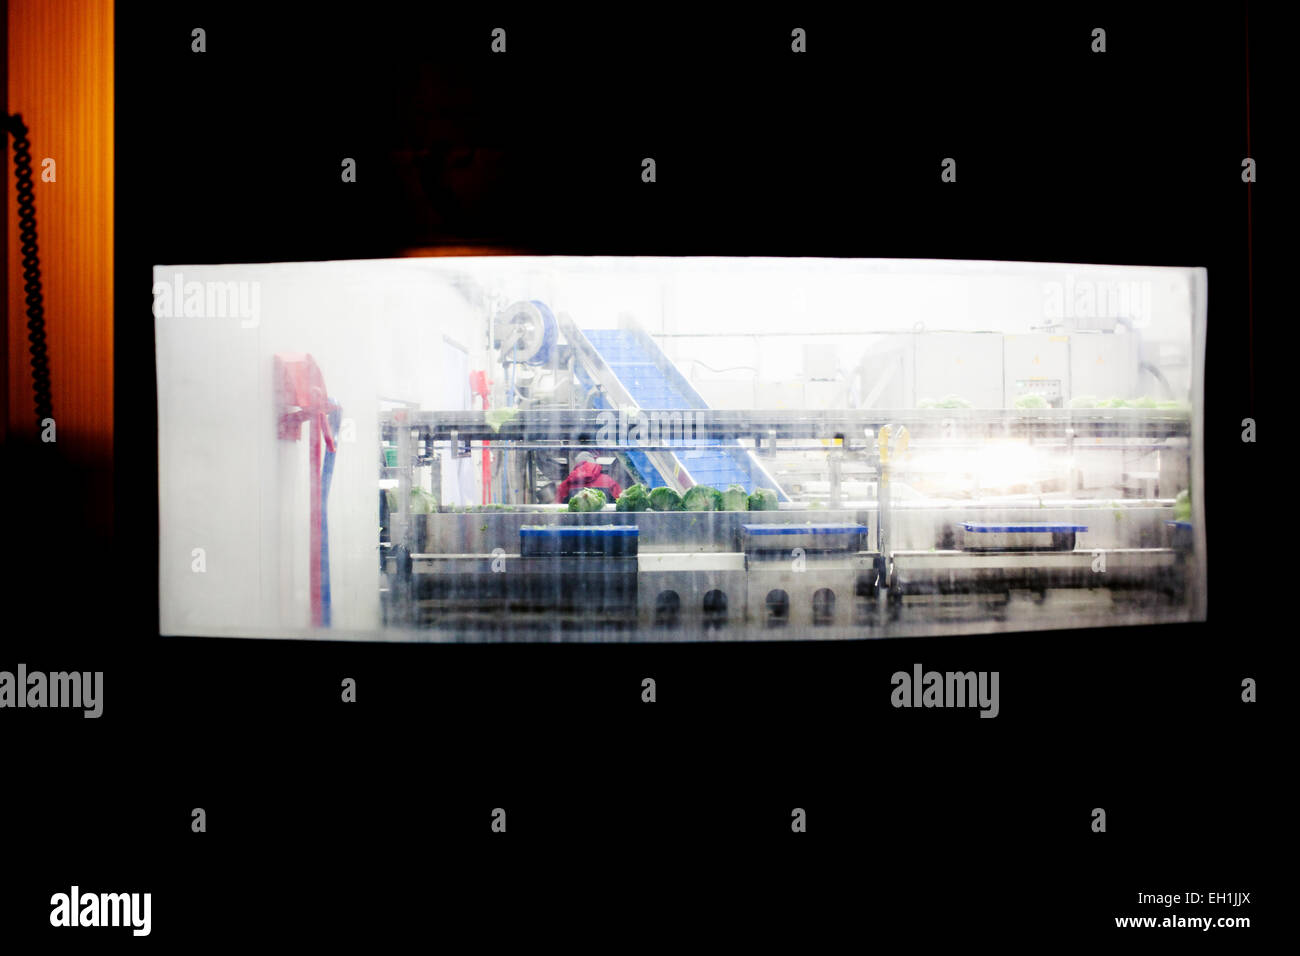 Conveyor belt in salad factory - Stock Image